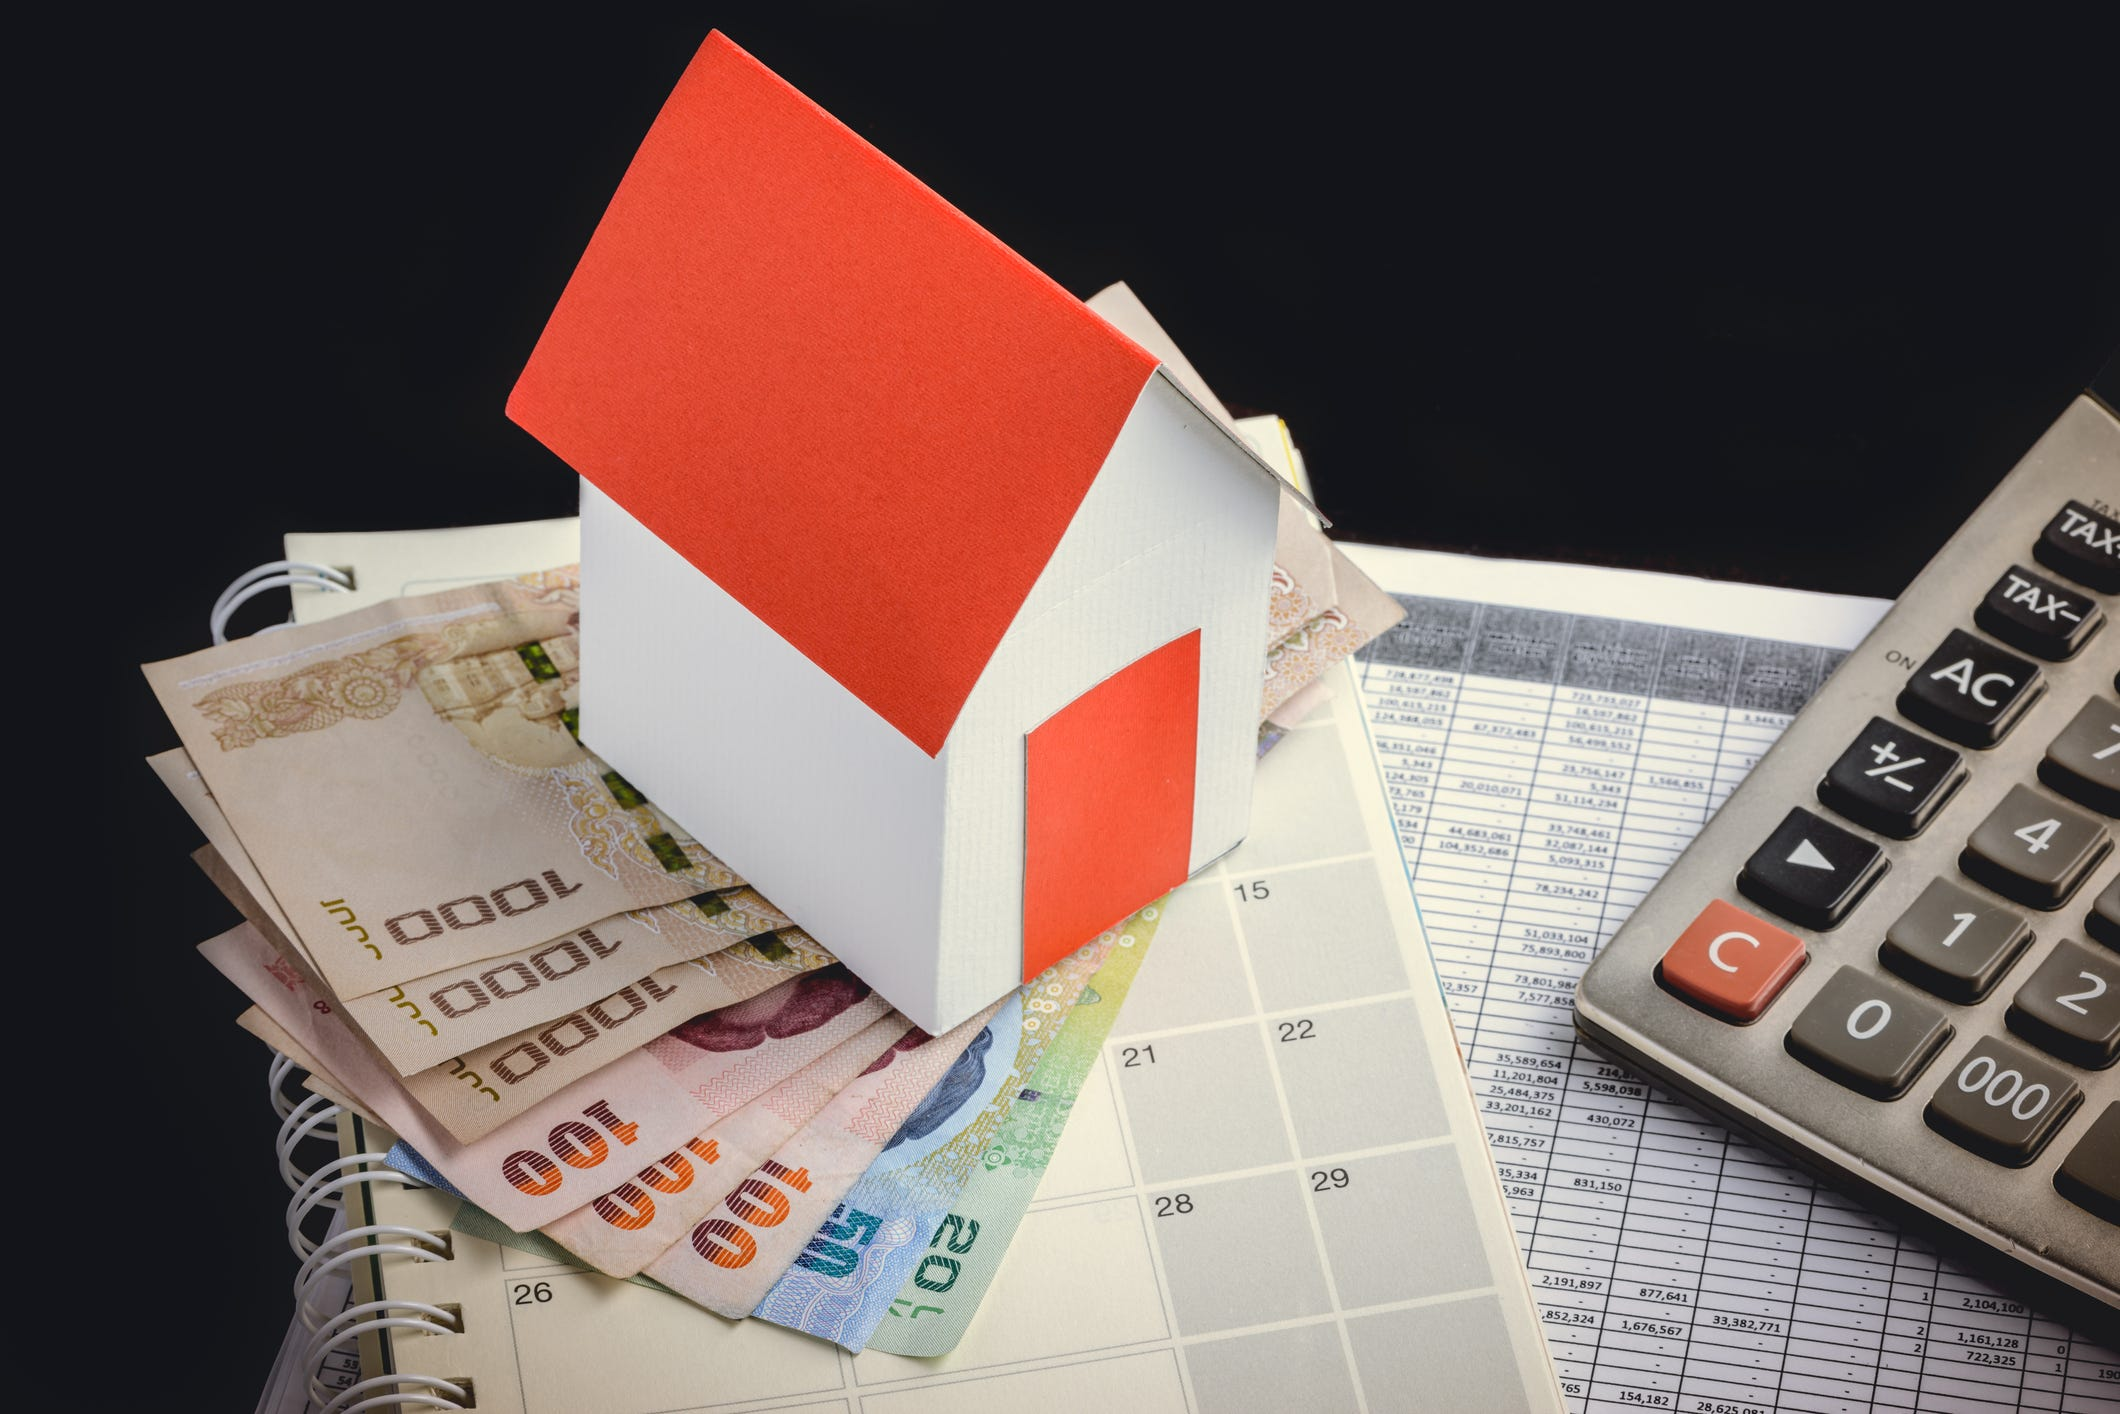 Mortgage rates are low. Time to refinance?